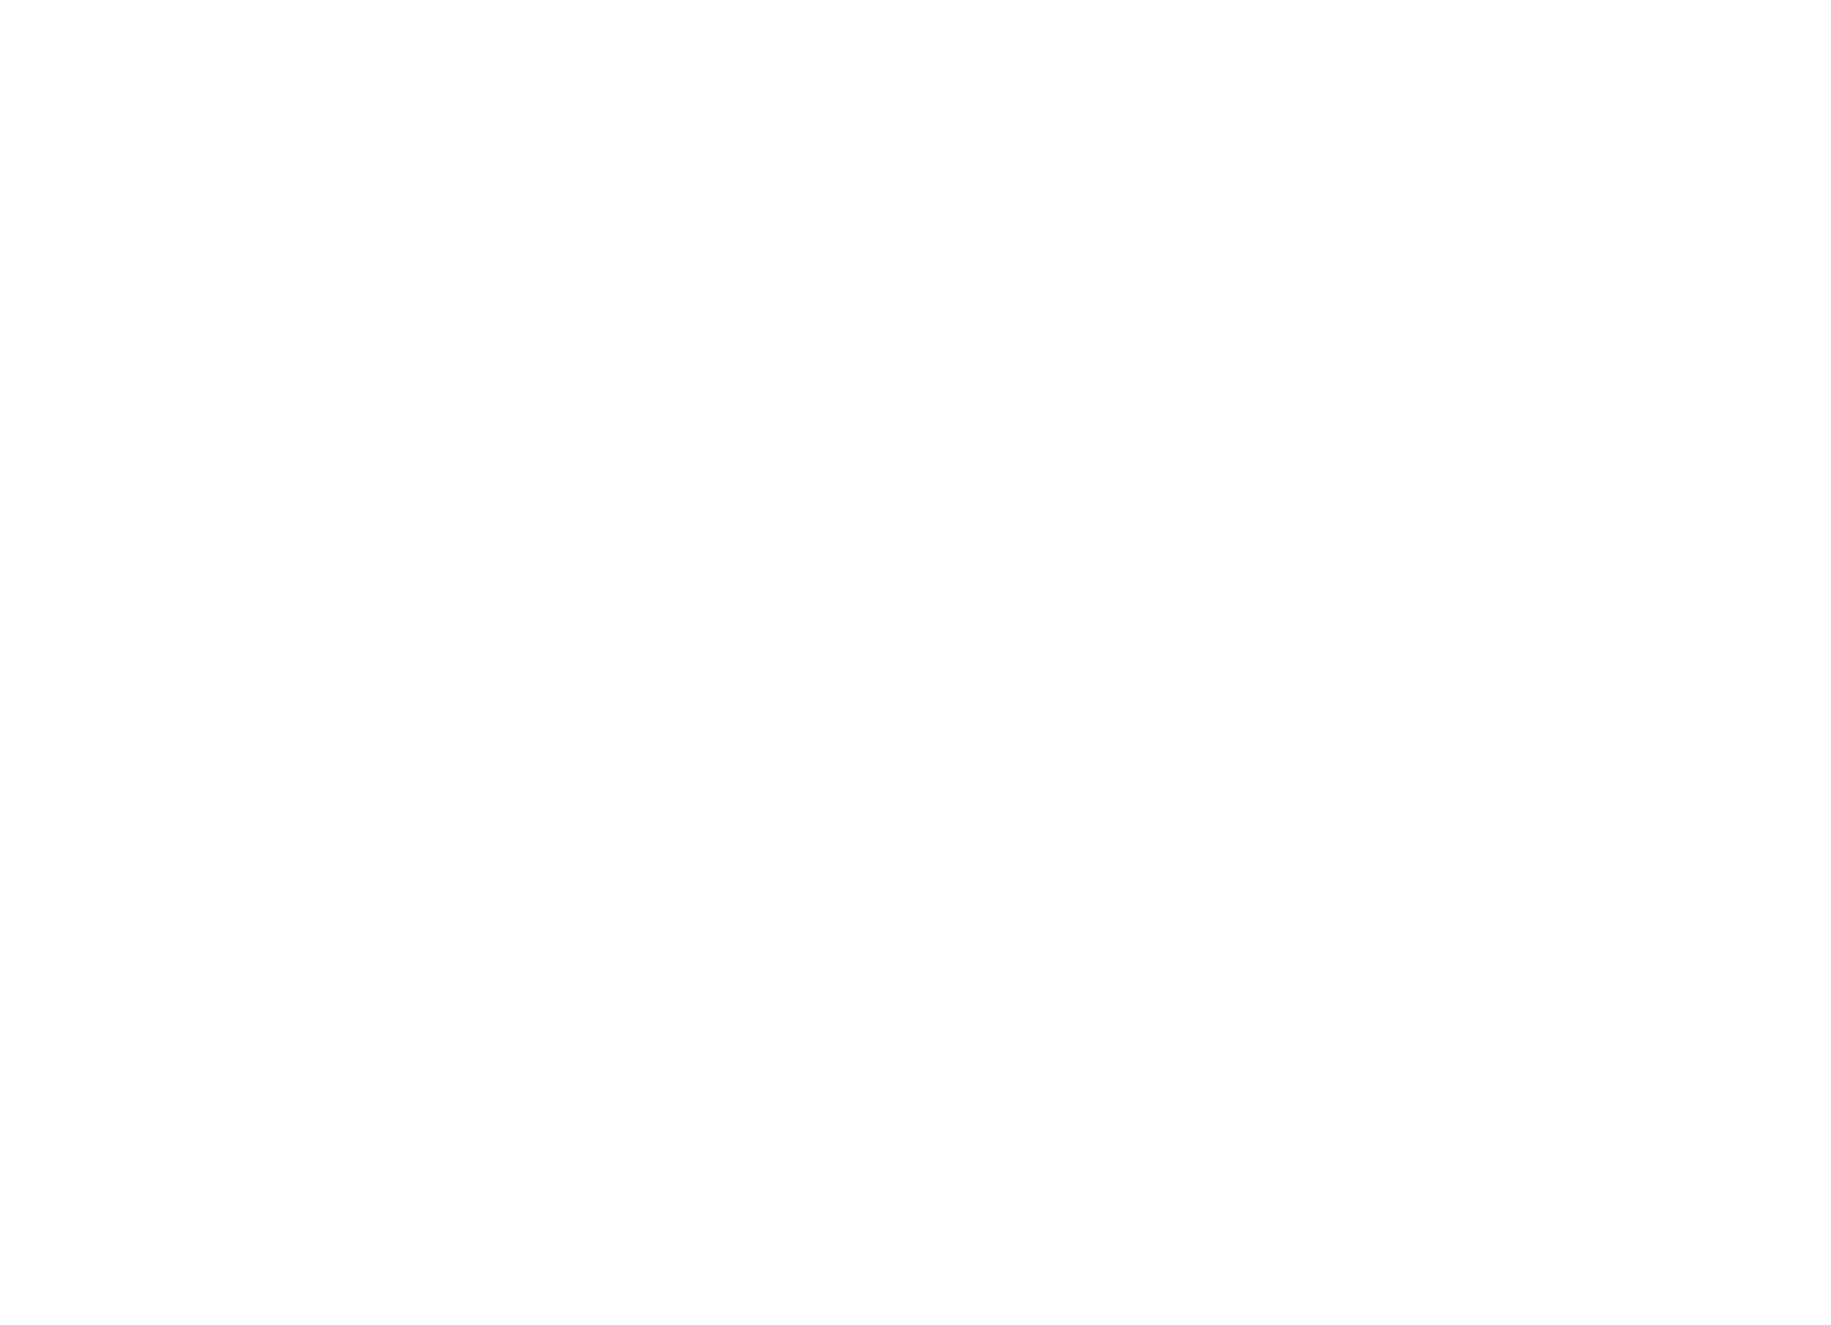 fruitful_design_website_Lettering_Ready_to_grow@4x-8.png